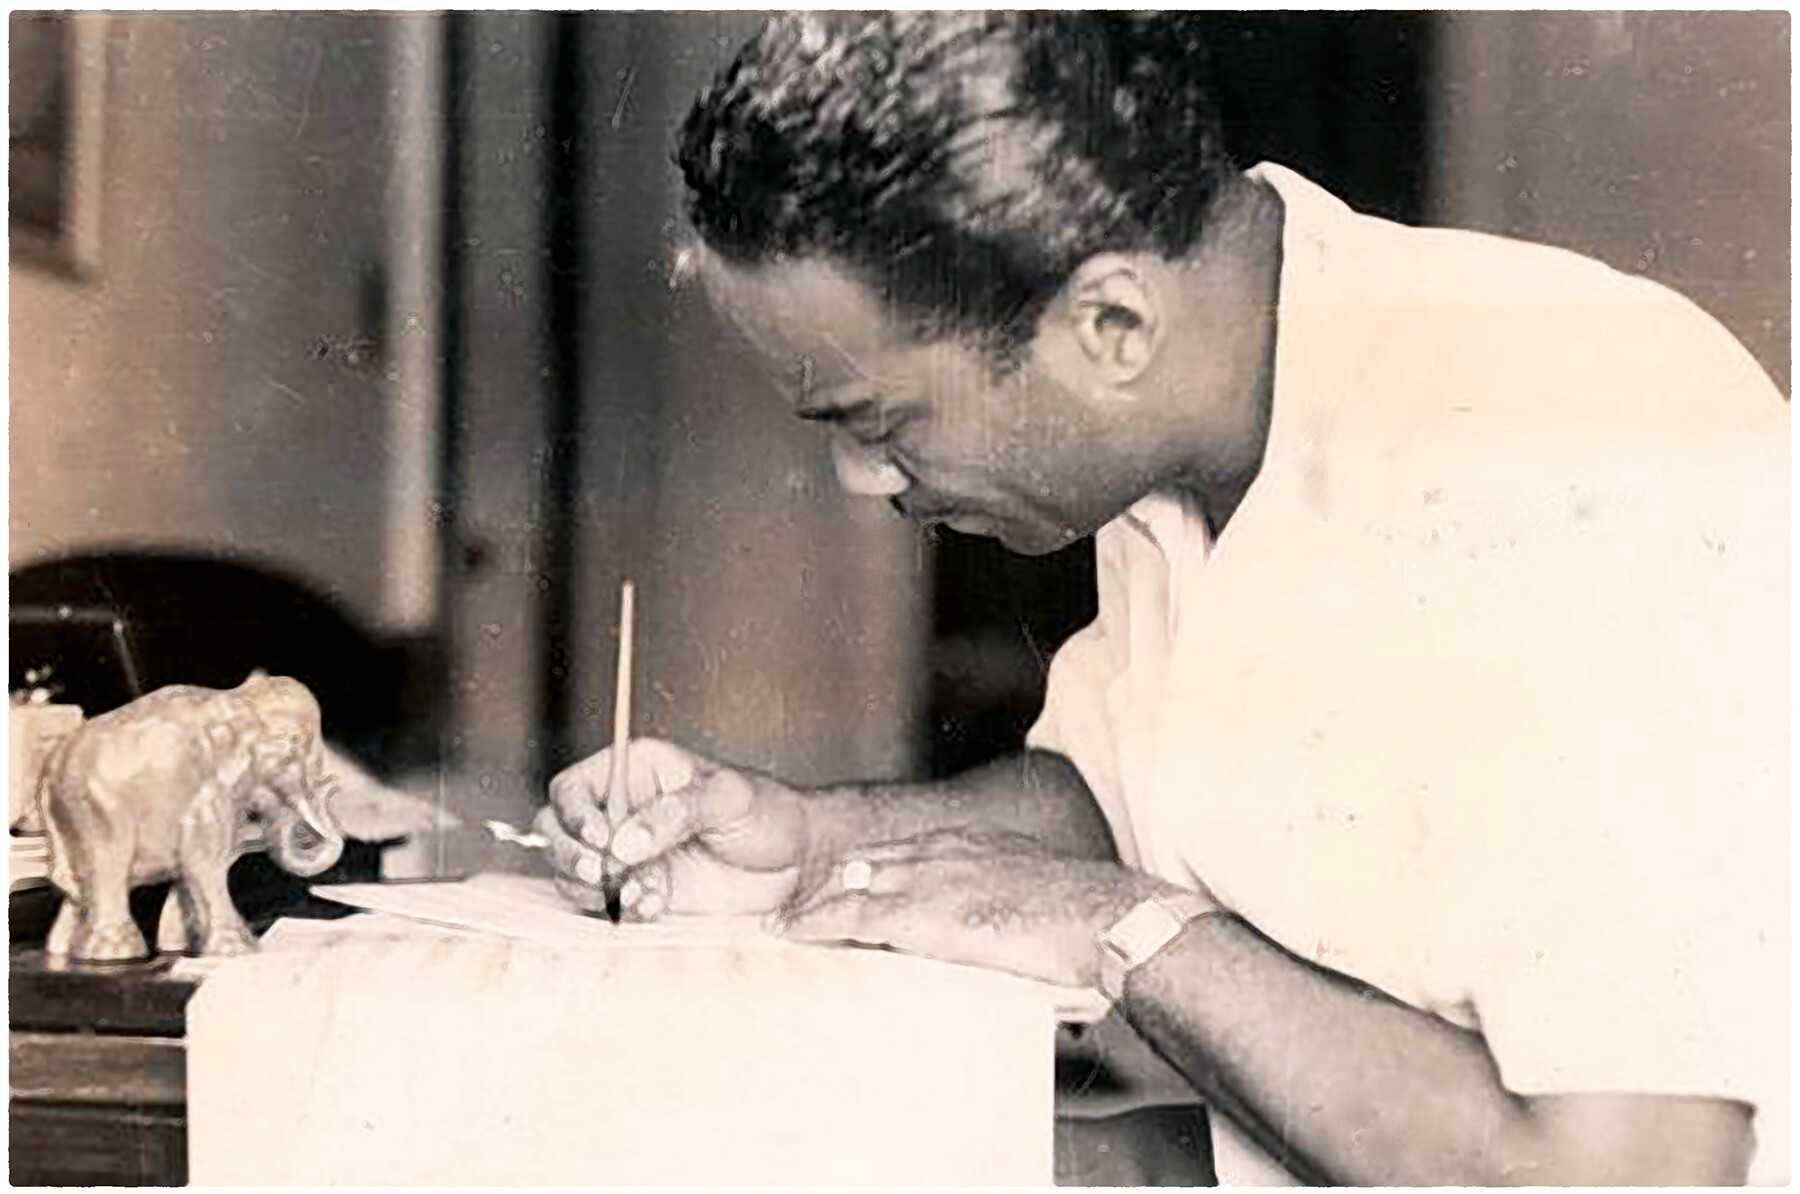 Buck composing or arranging, probably in China.